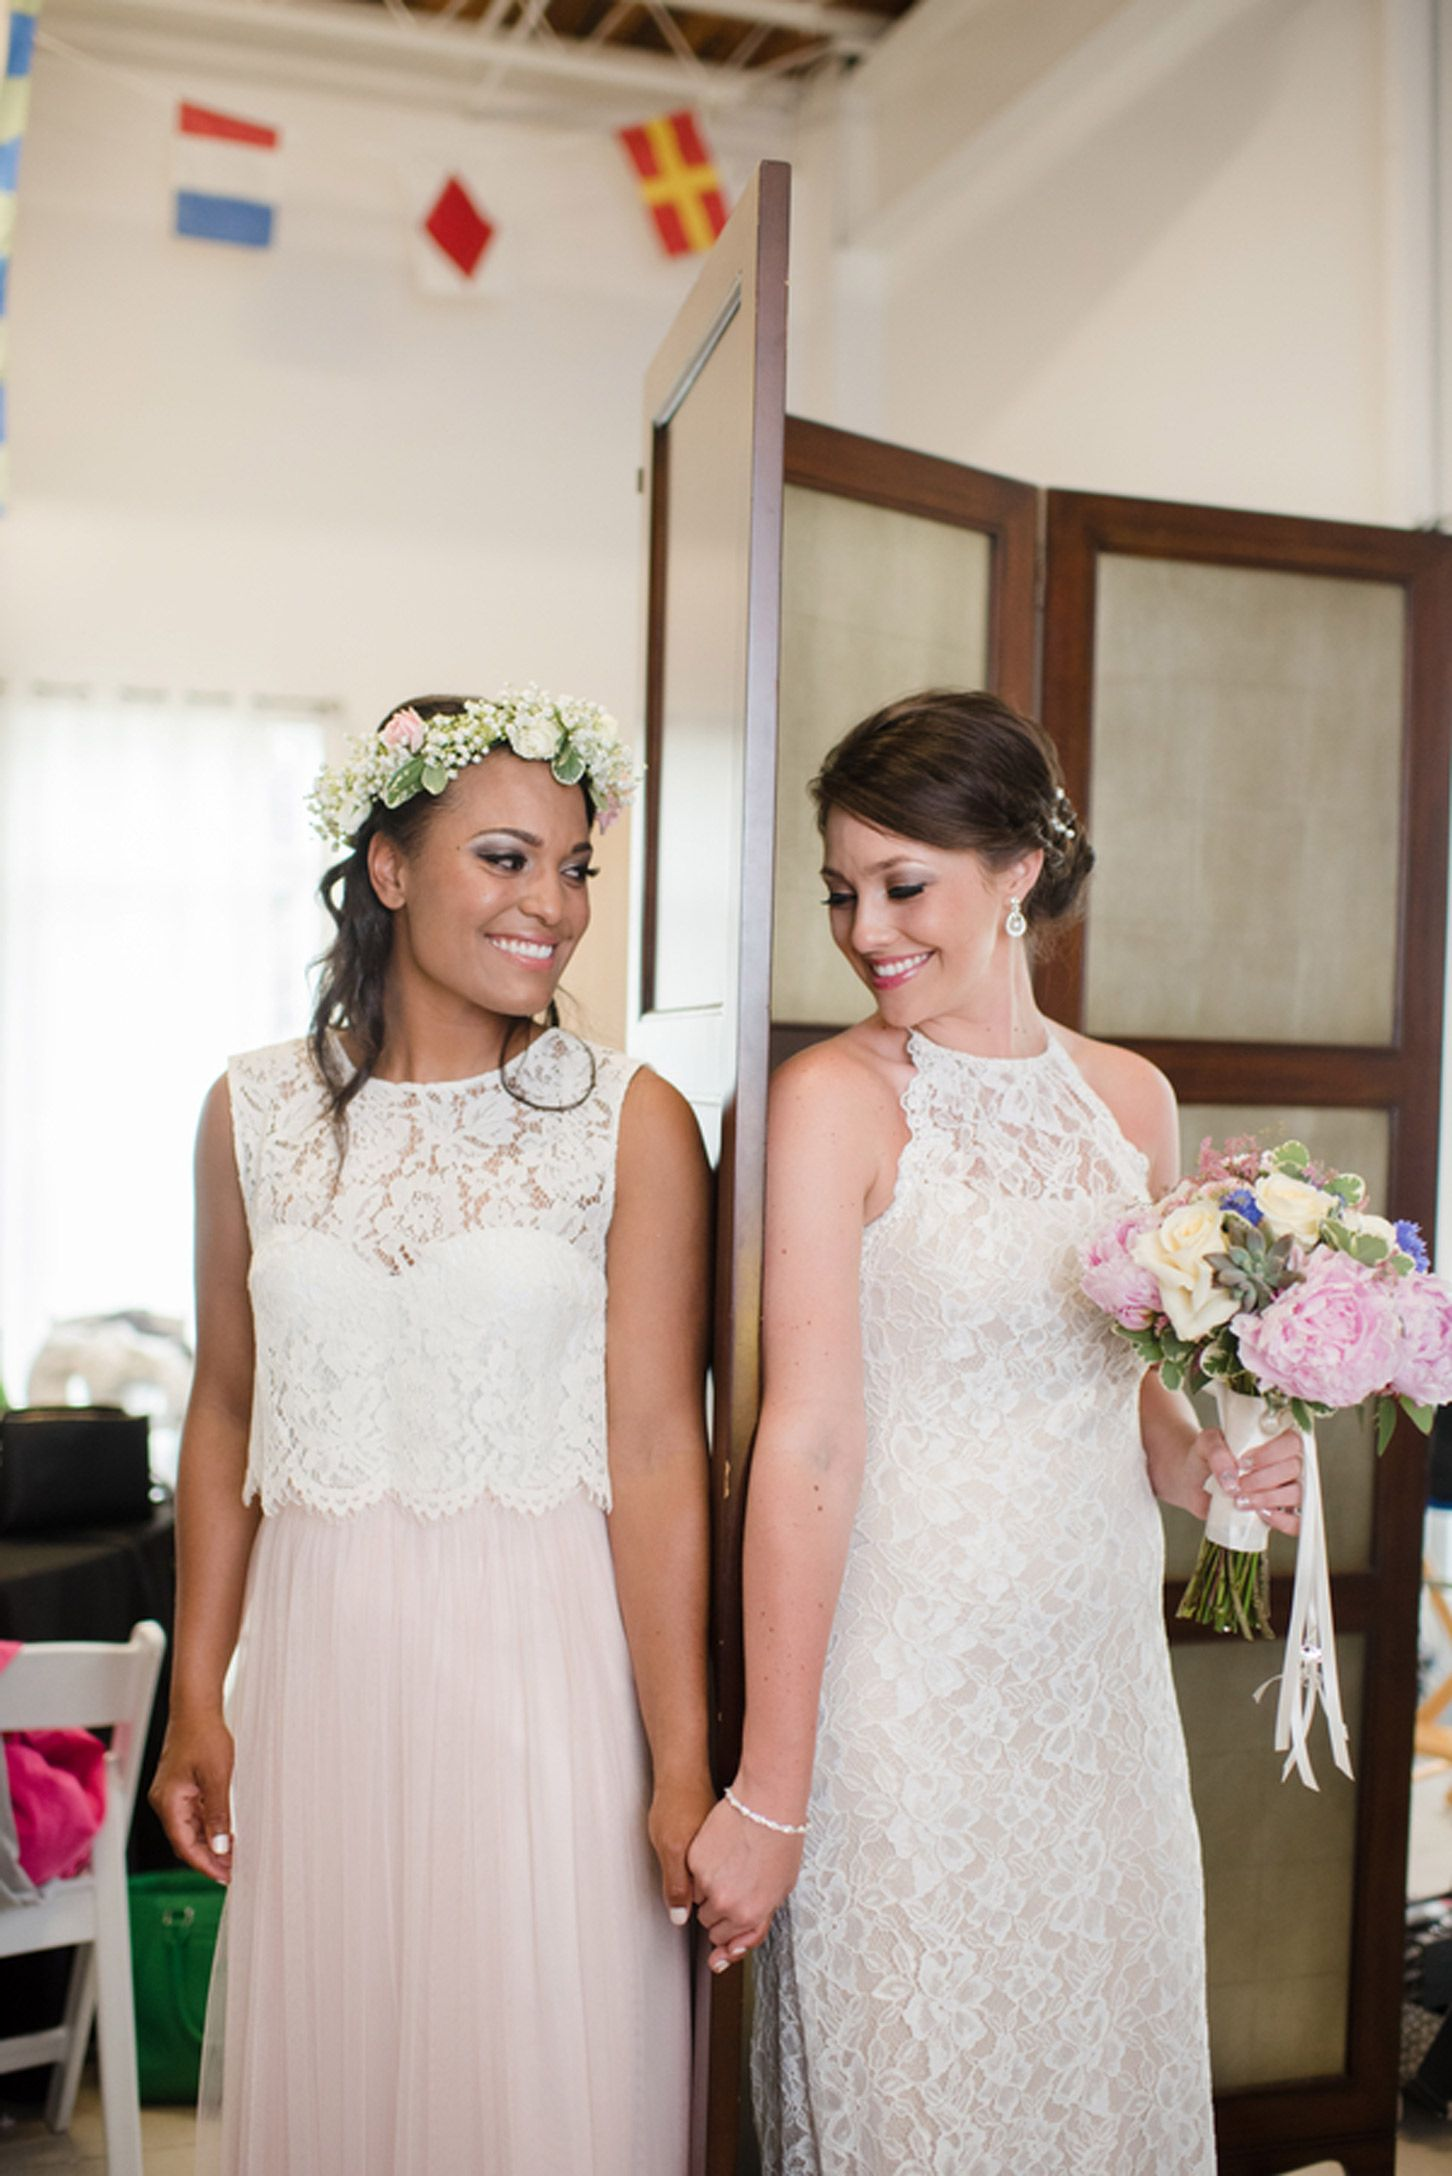 Alyssa & Megan s Coastal Celebration 2 Brides 2 Be …